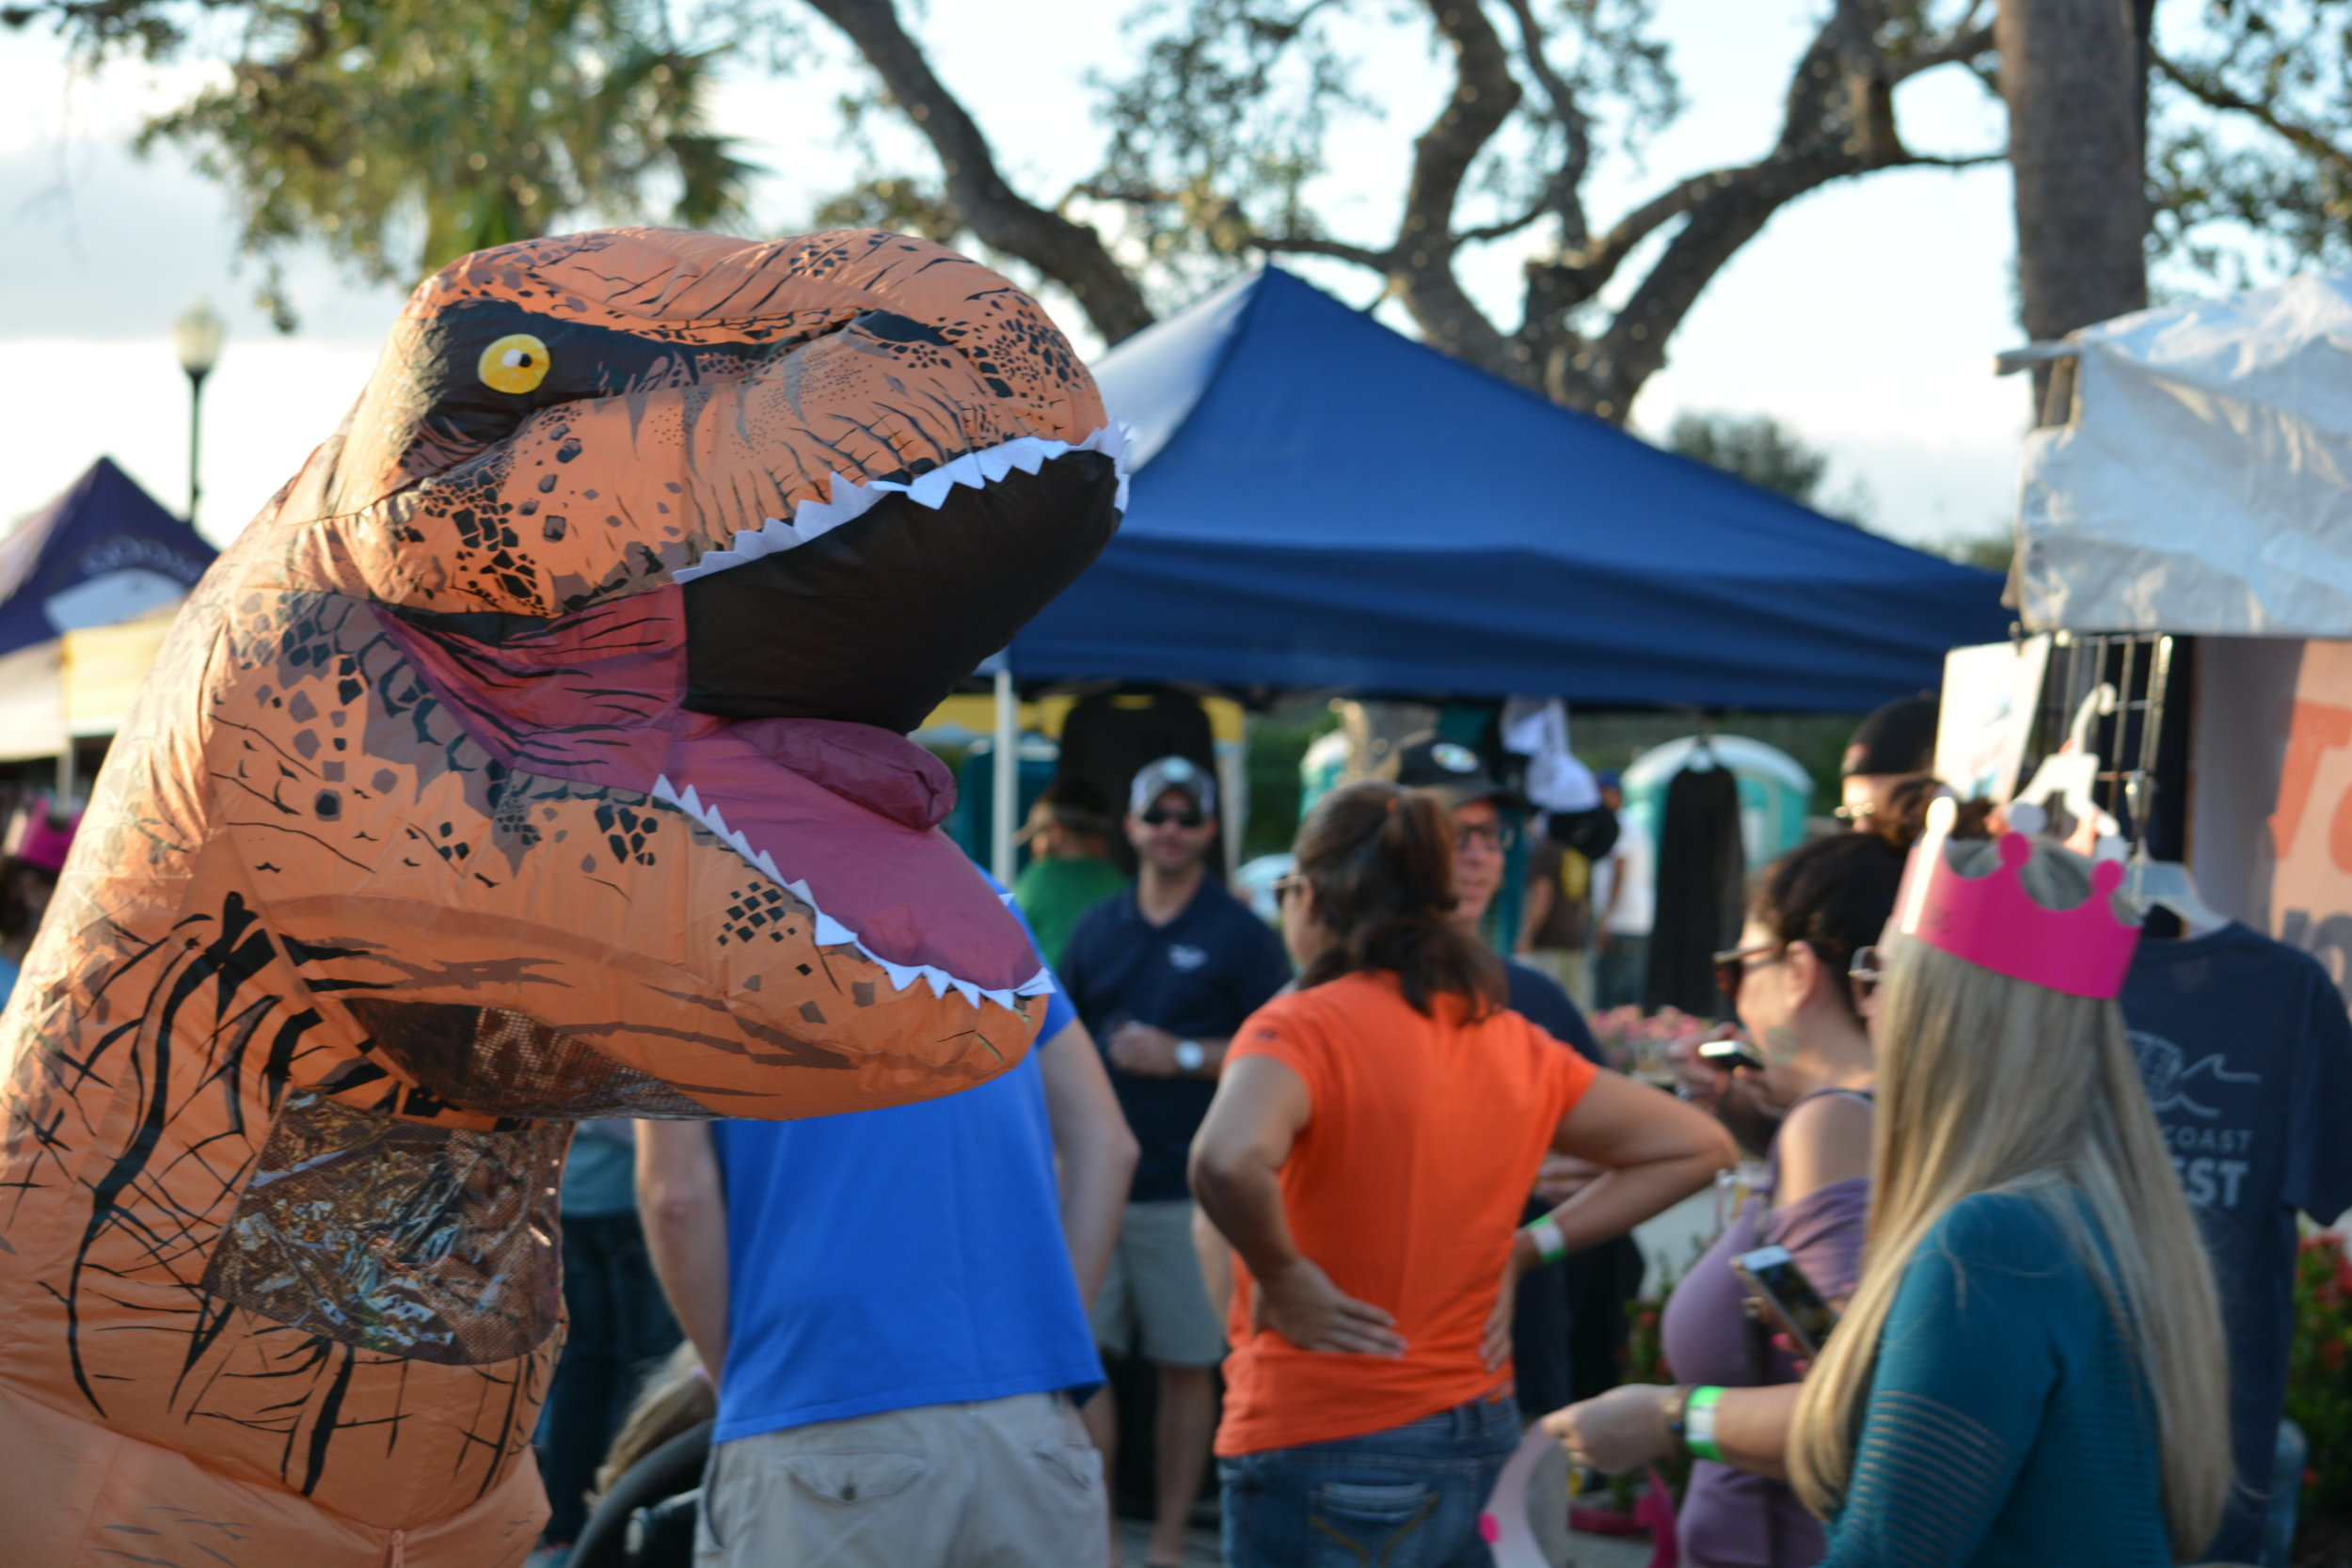 Come aboard with us - for the 2019 Treasure Coast Brew Fest at Tradition Square on November 9th, and be ye not disappointed with the bounty returned to you for your investment.